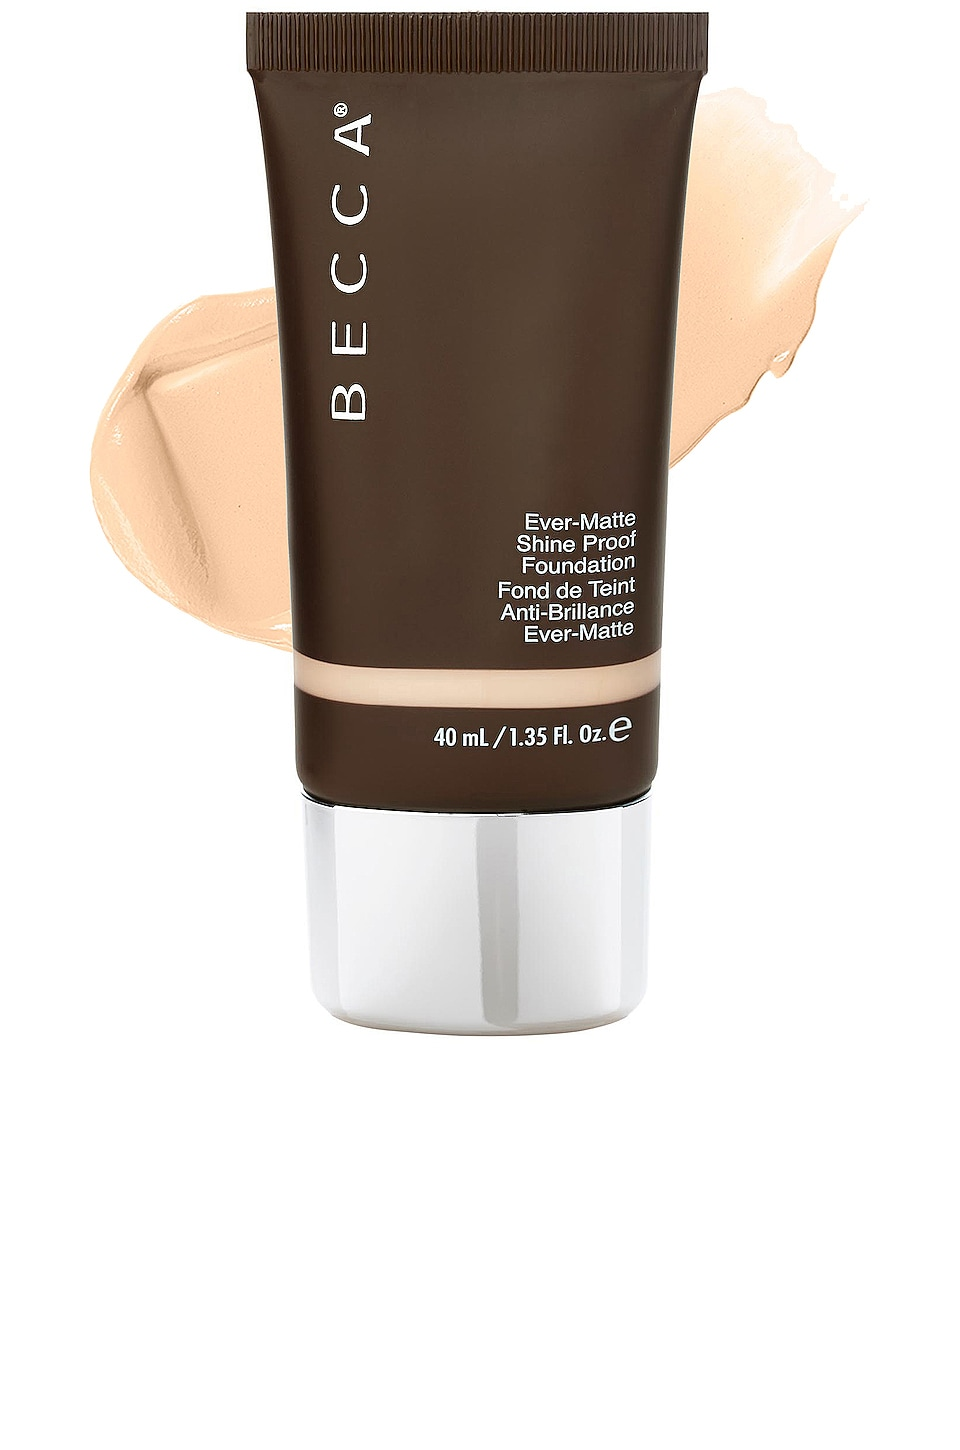 BECCA Ever-Matte Shine Proof Foundation in Porcelain